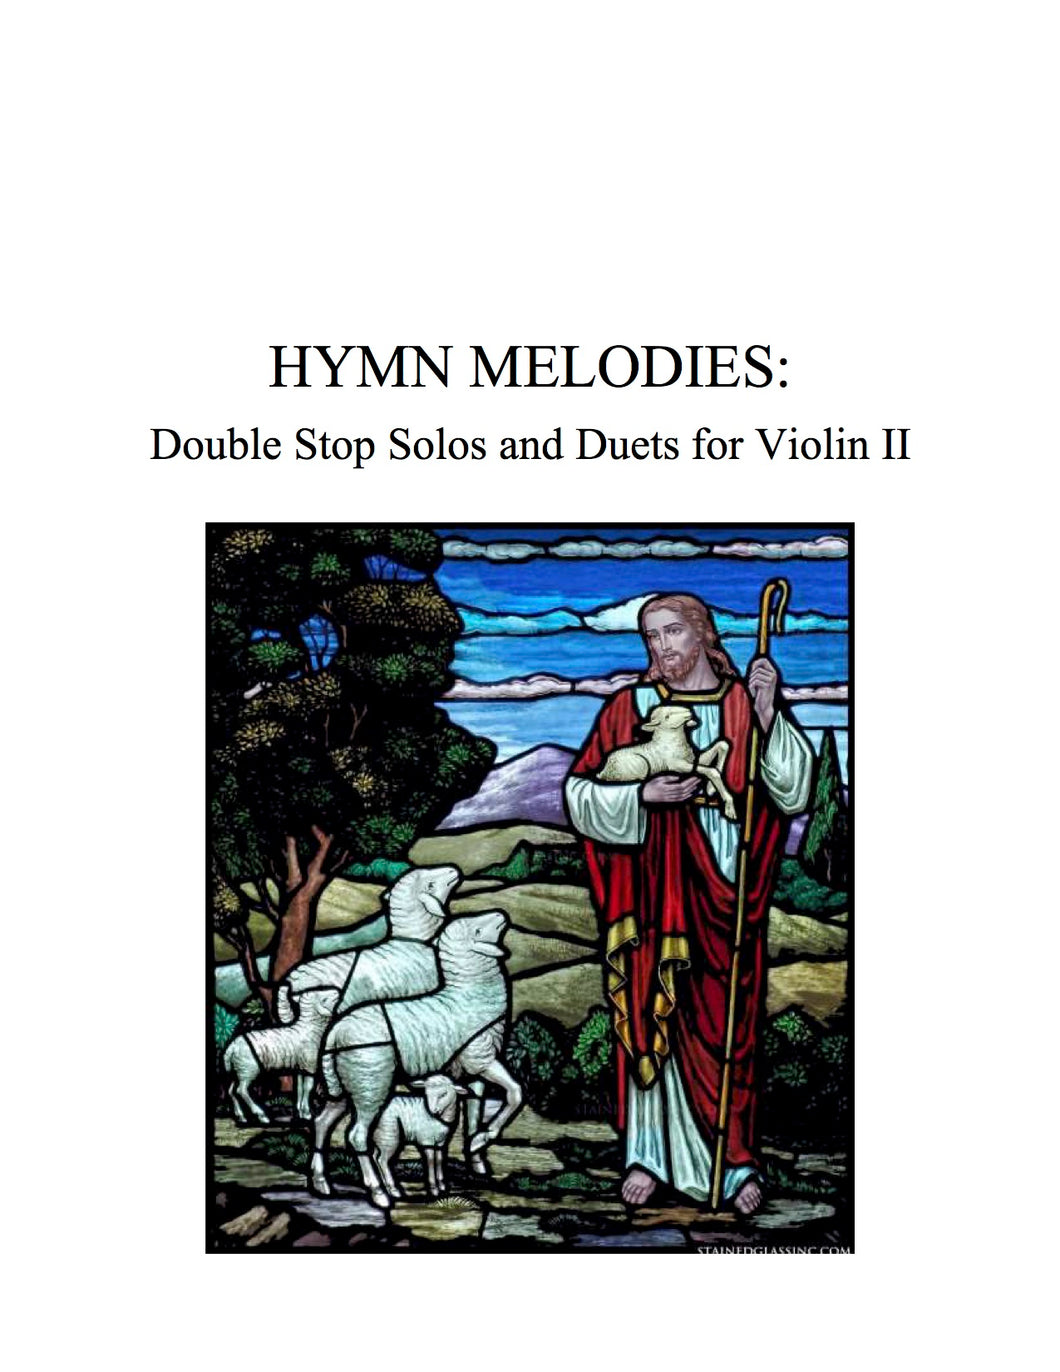 071 - Hymn Melodies: Double Stop Solos and Duets For Violin, Volume II